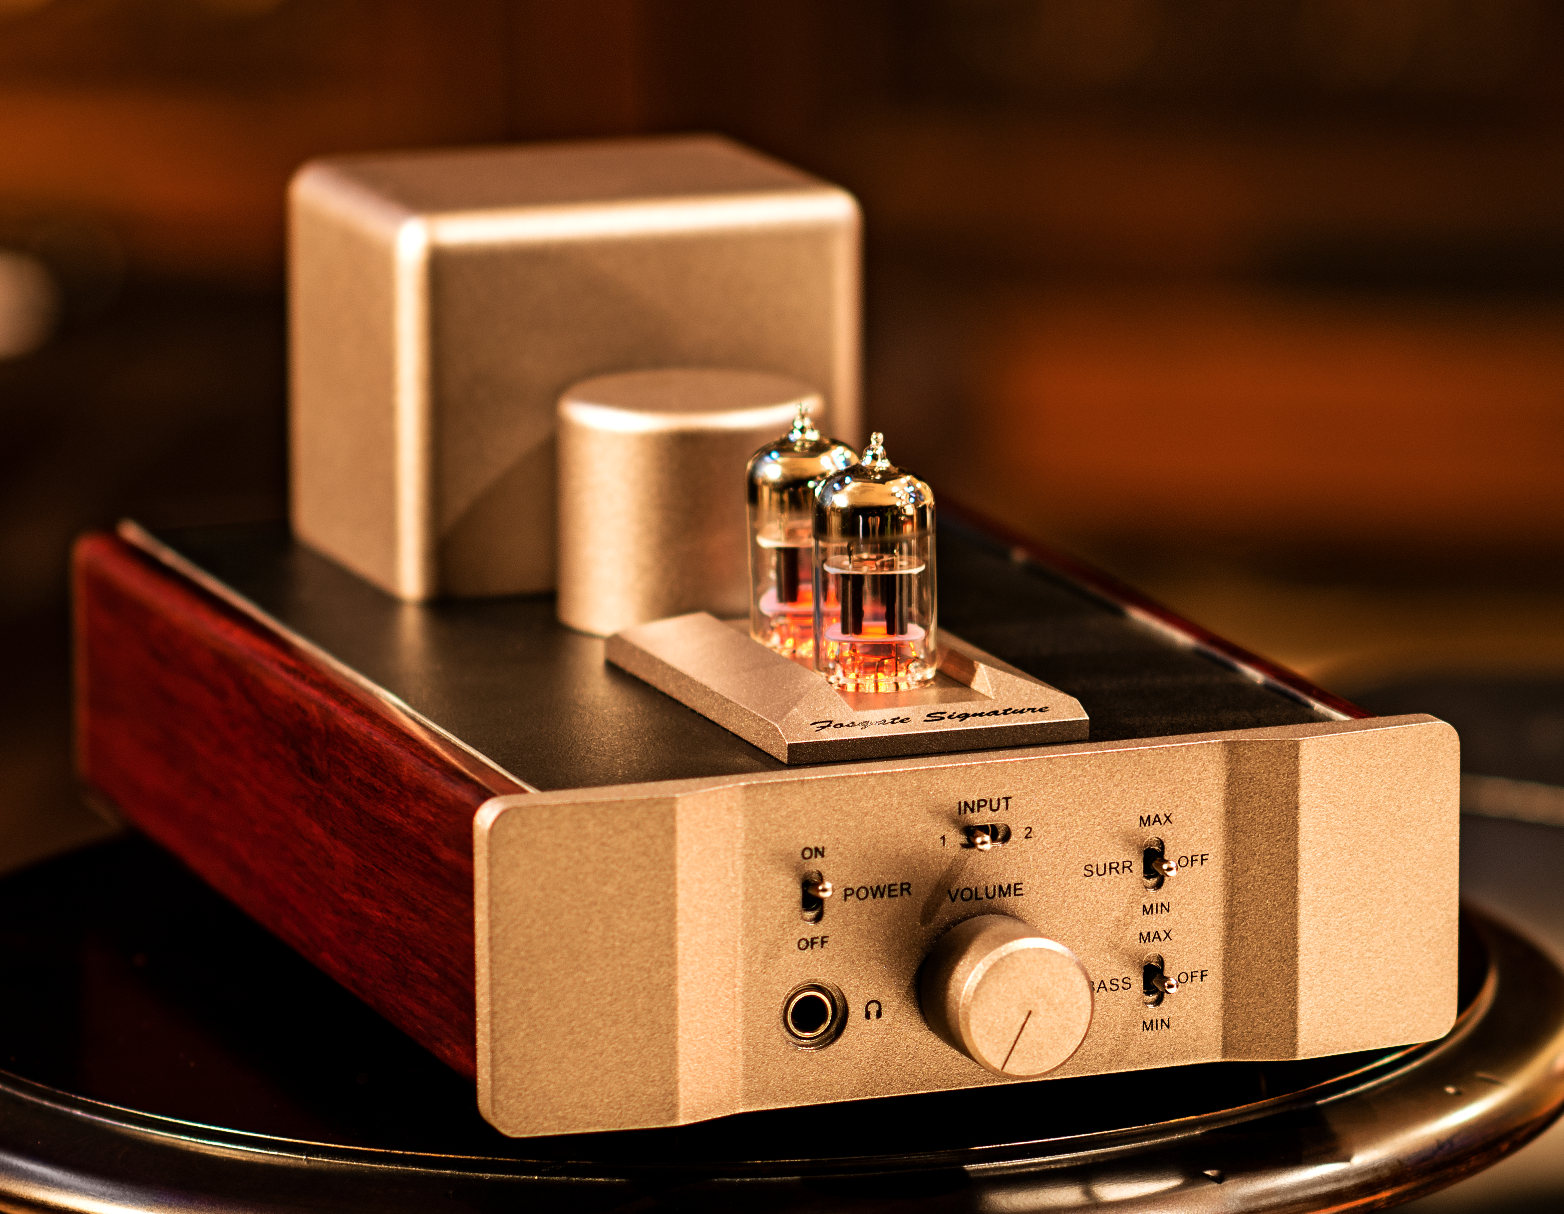 The Fosgate Signature Tube Headphone Amplifier Can Drive All Of Lifier Circuit Schematic Todays Best Headphones It Features Fosgates Unique And Patented Designs